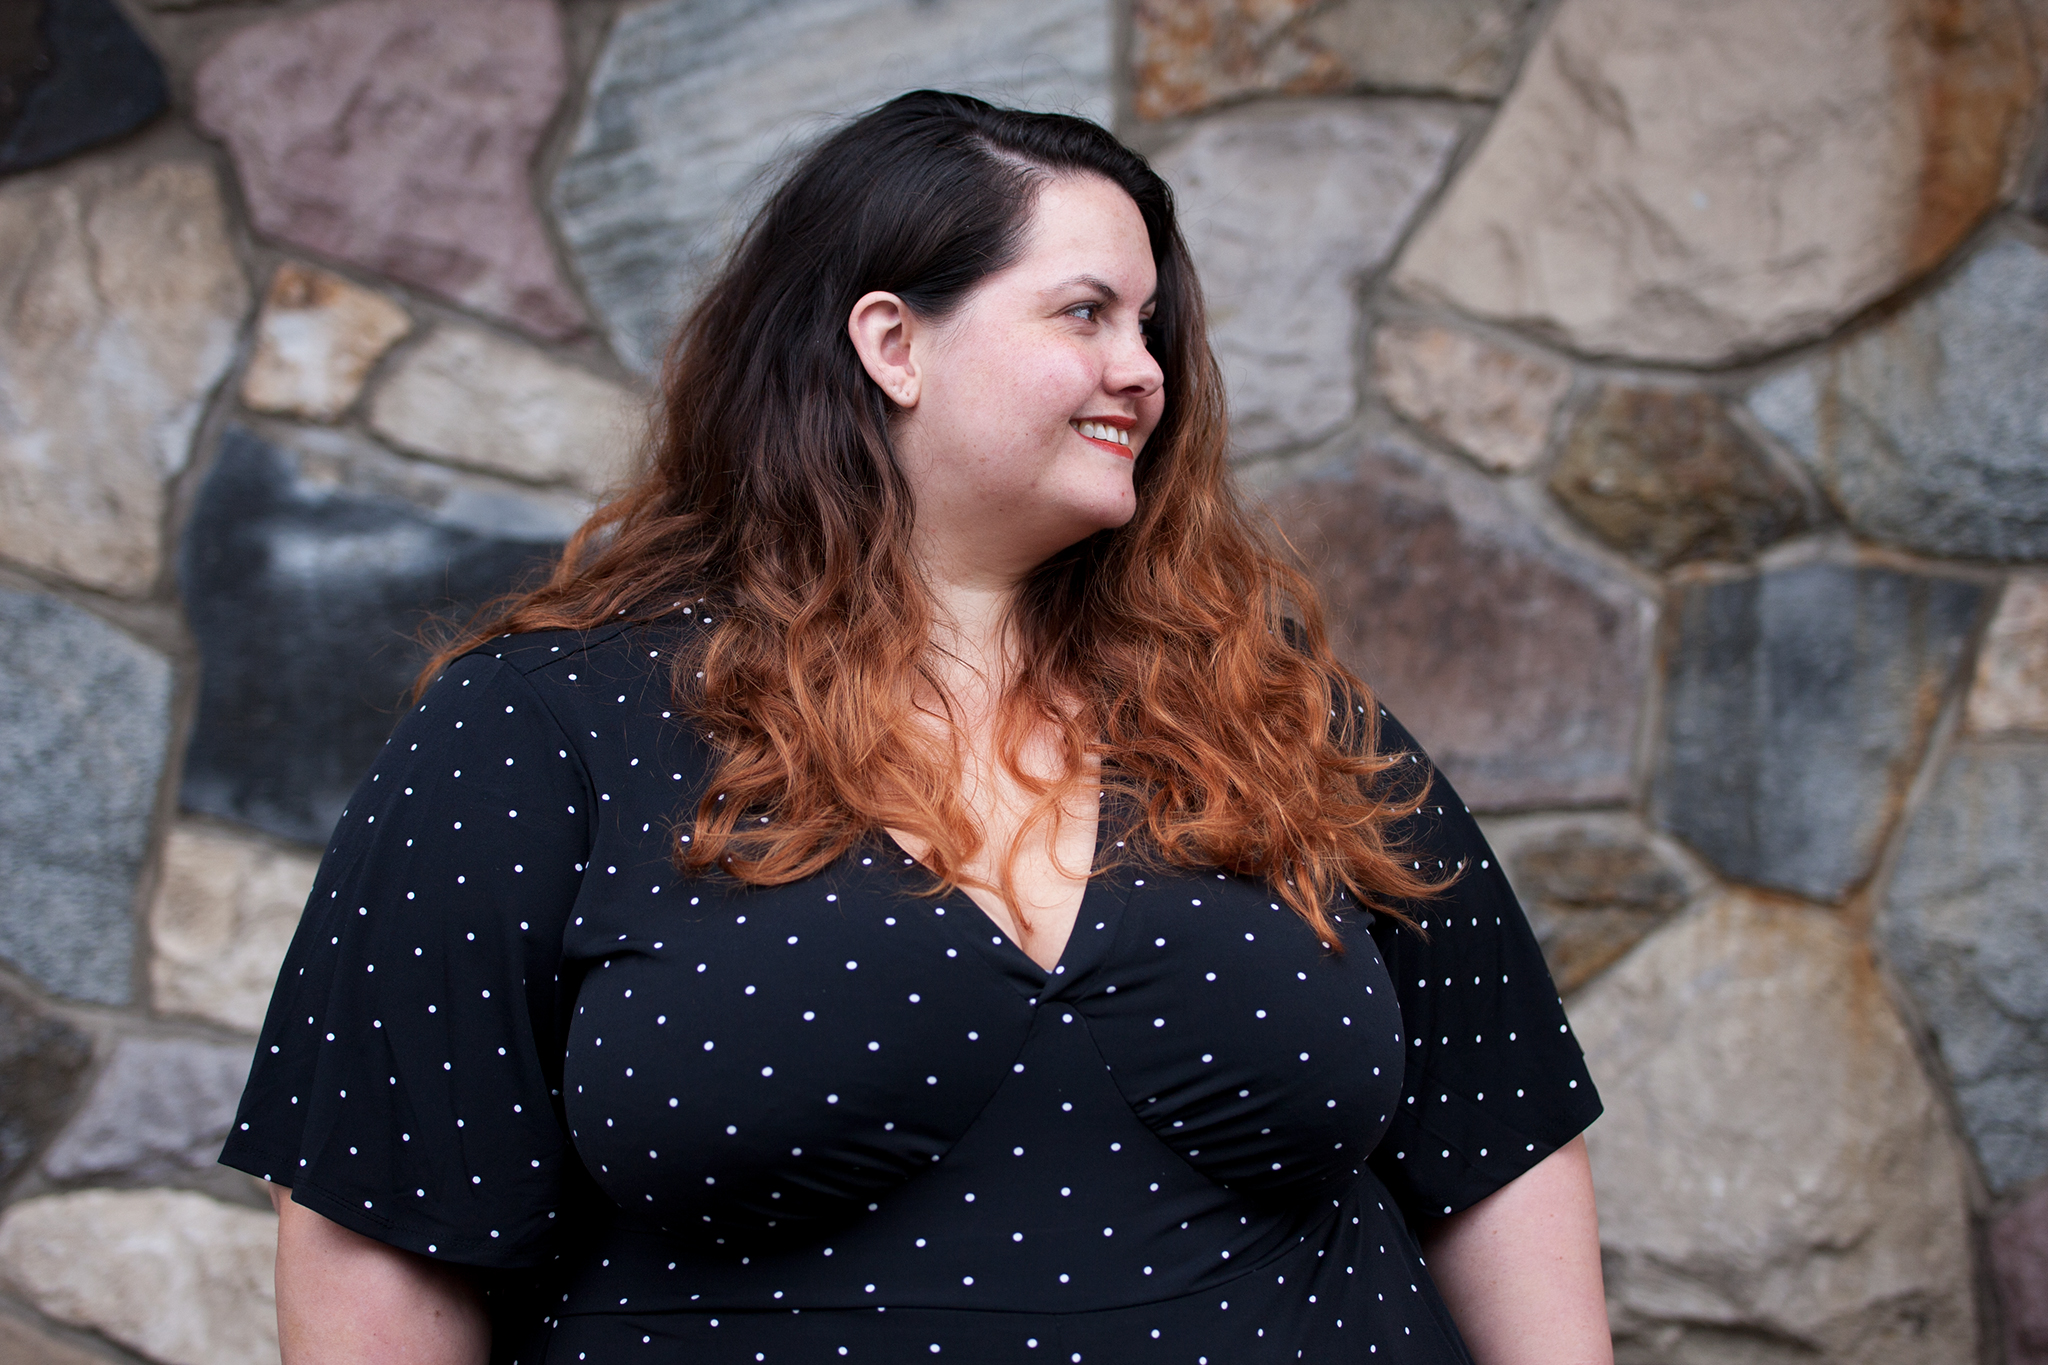 a1e539eec1b New Zealand plus size blogger Meagan Kerr wears Polka Dot Romper from Torrid .